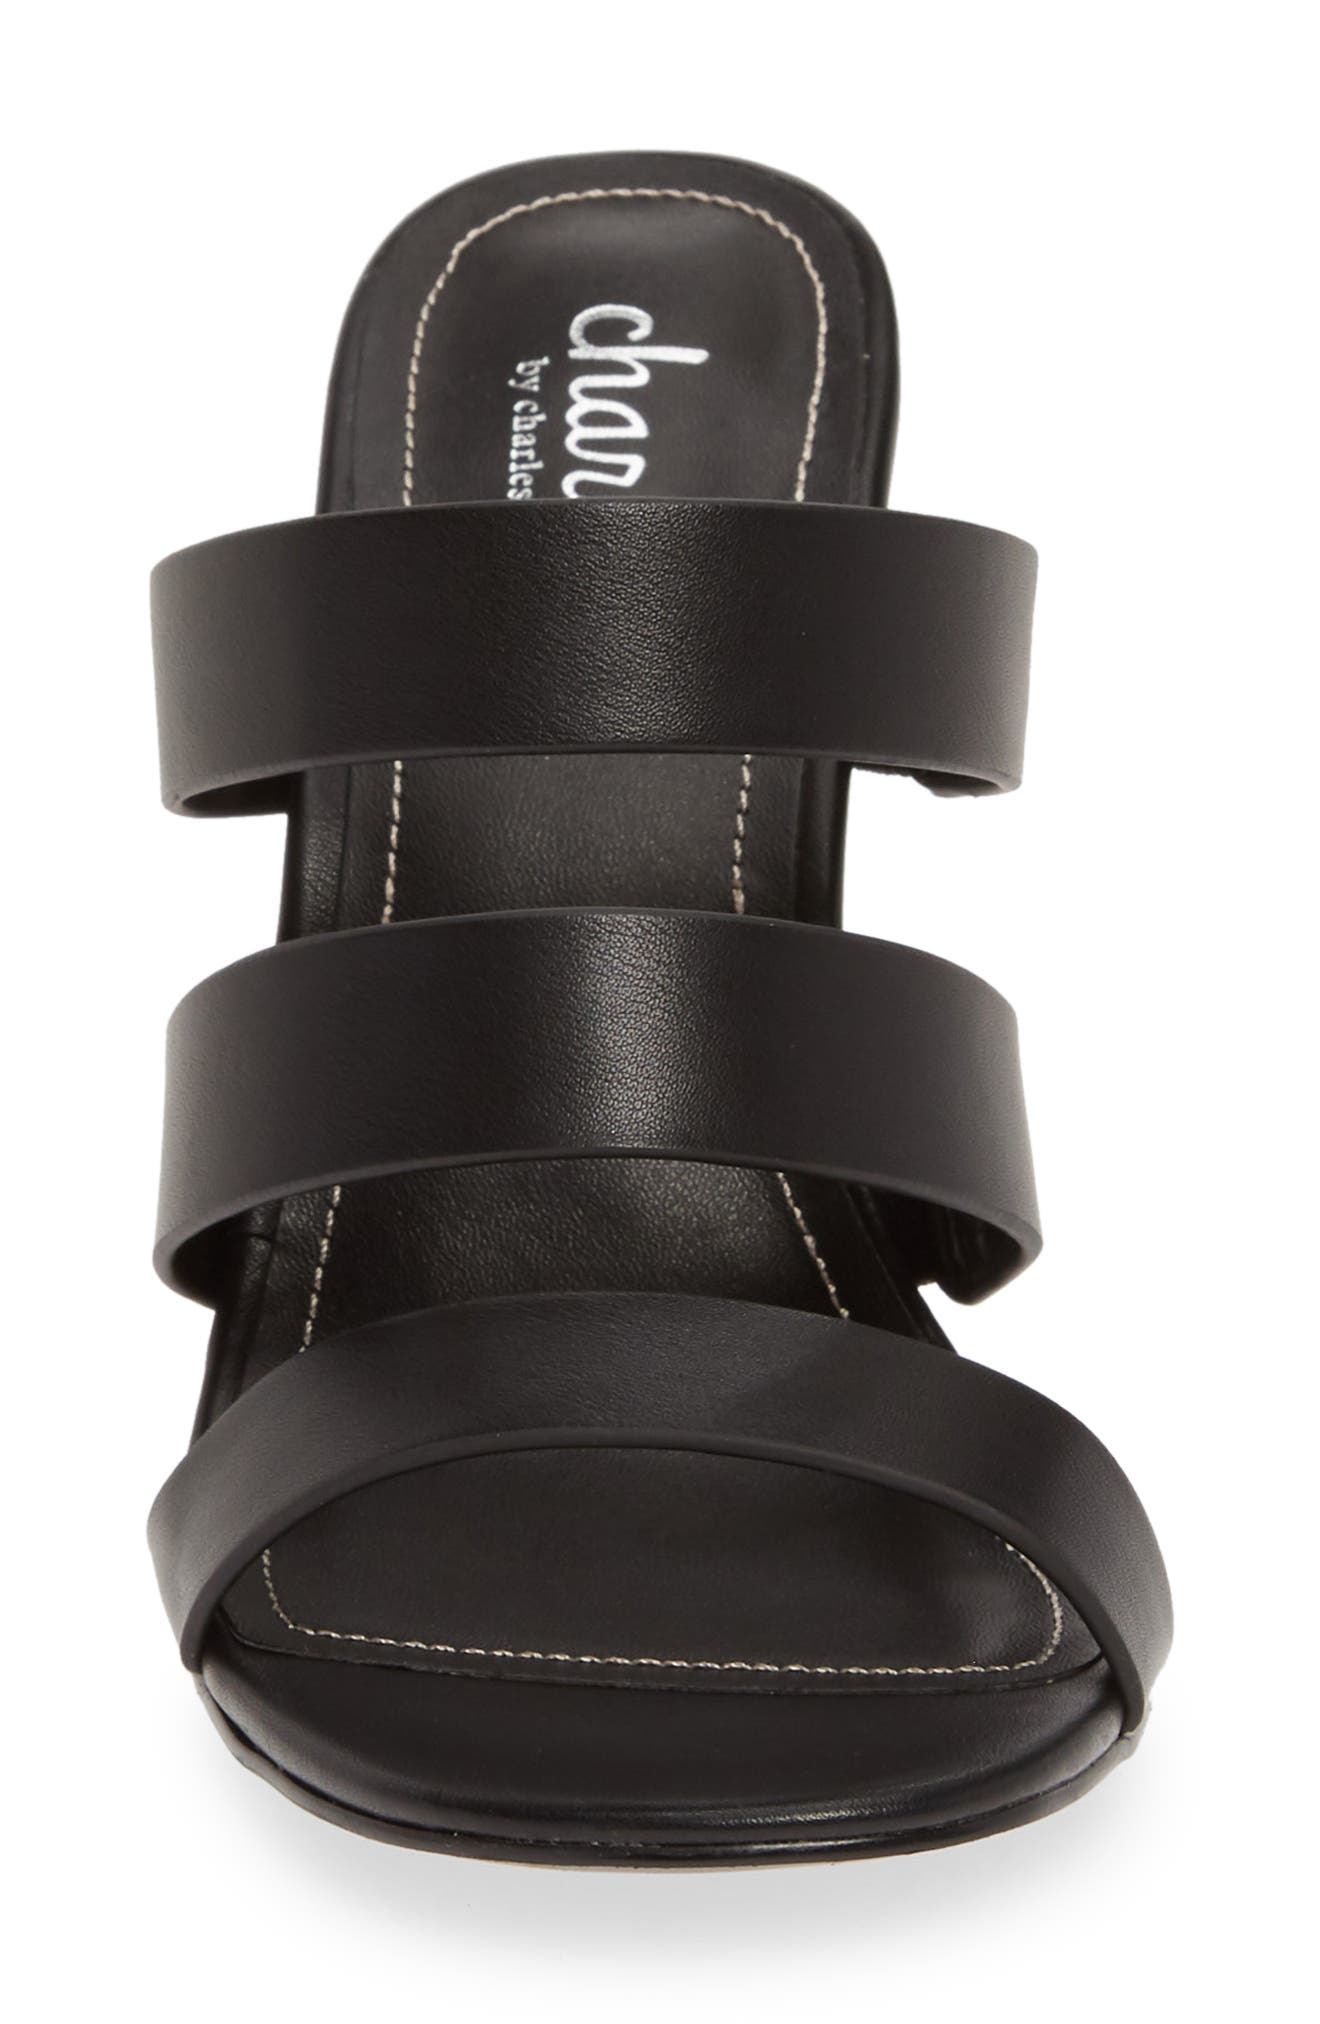 CHARLES BY CHARLES DAVID, Rivalary Slide Sandal, Alternate thumbnail 4, color, BLACK FAUX LEATHER